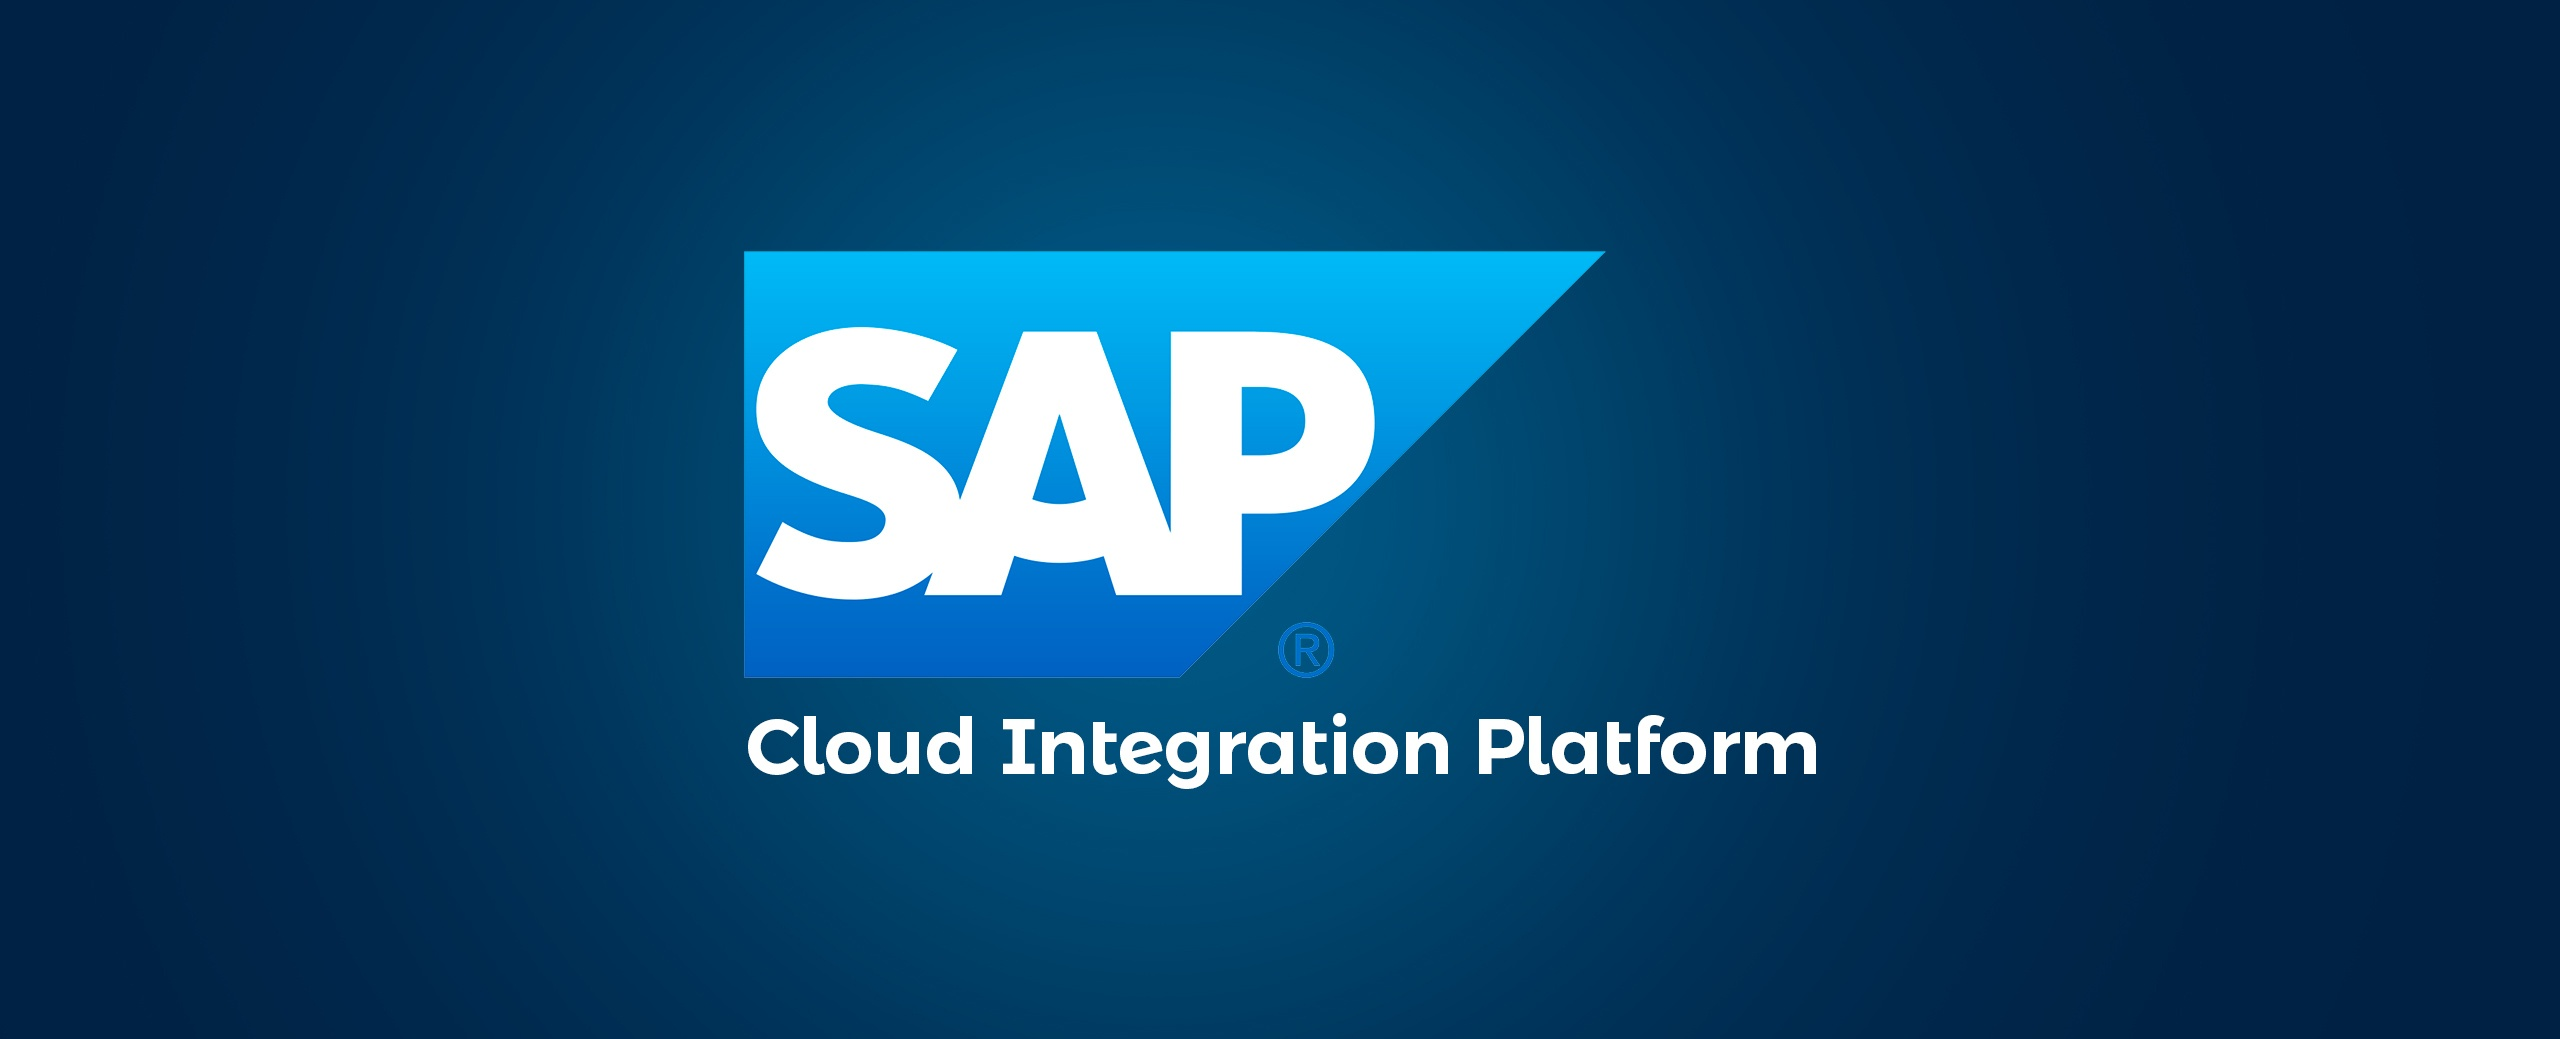 SAP Cloud Integration Platform: All You Need To Know!